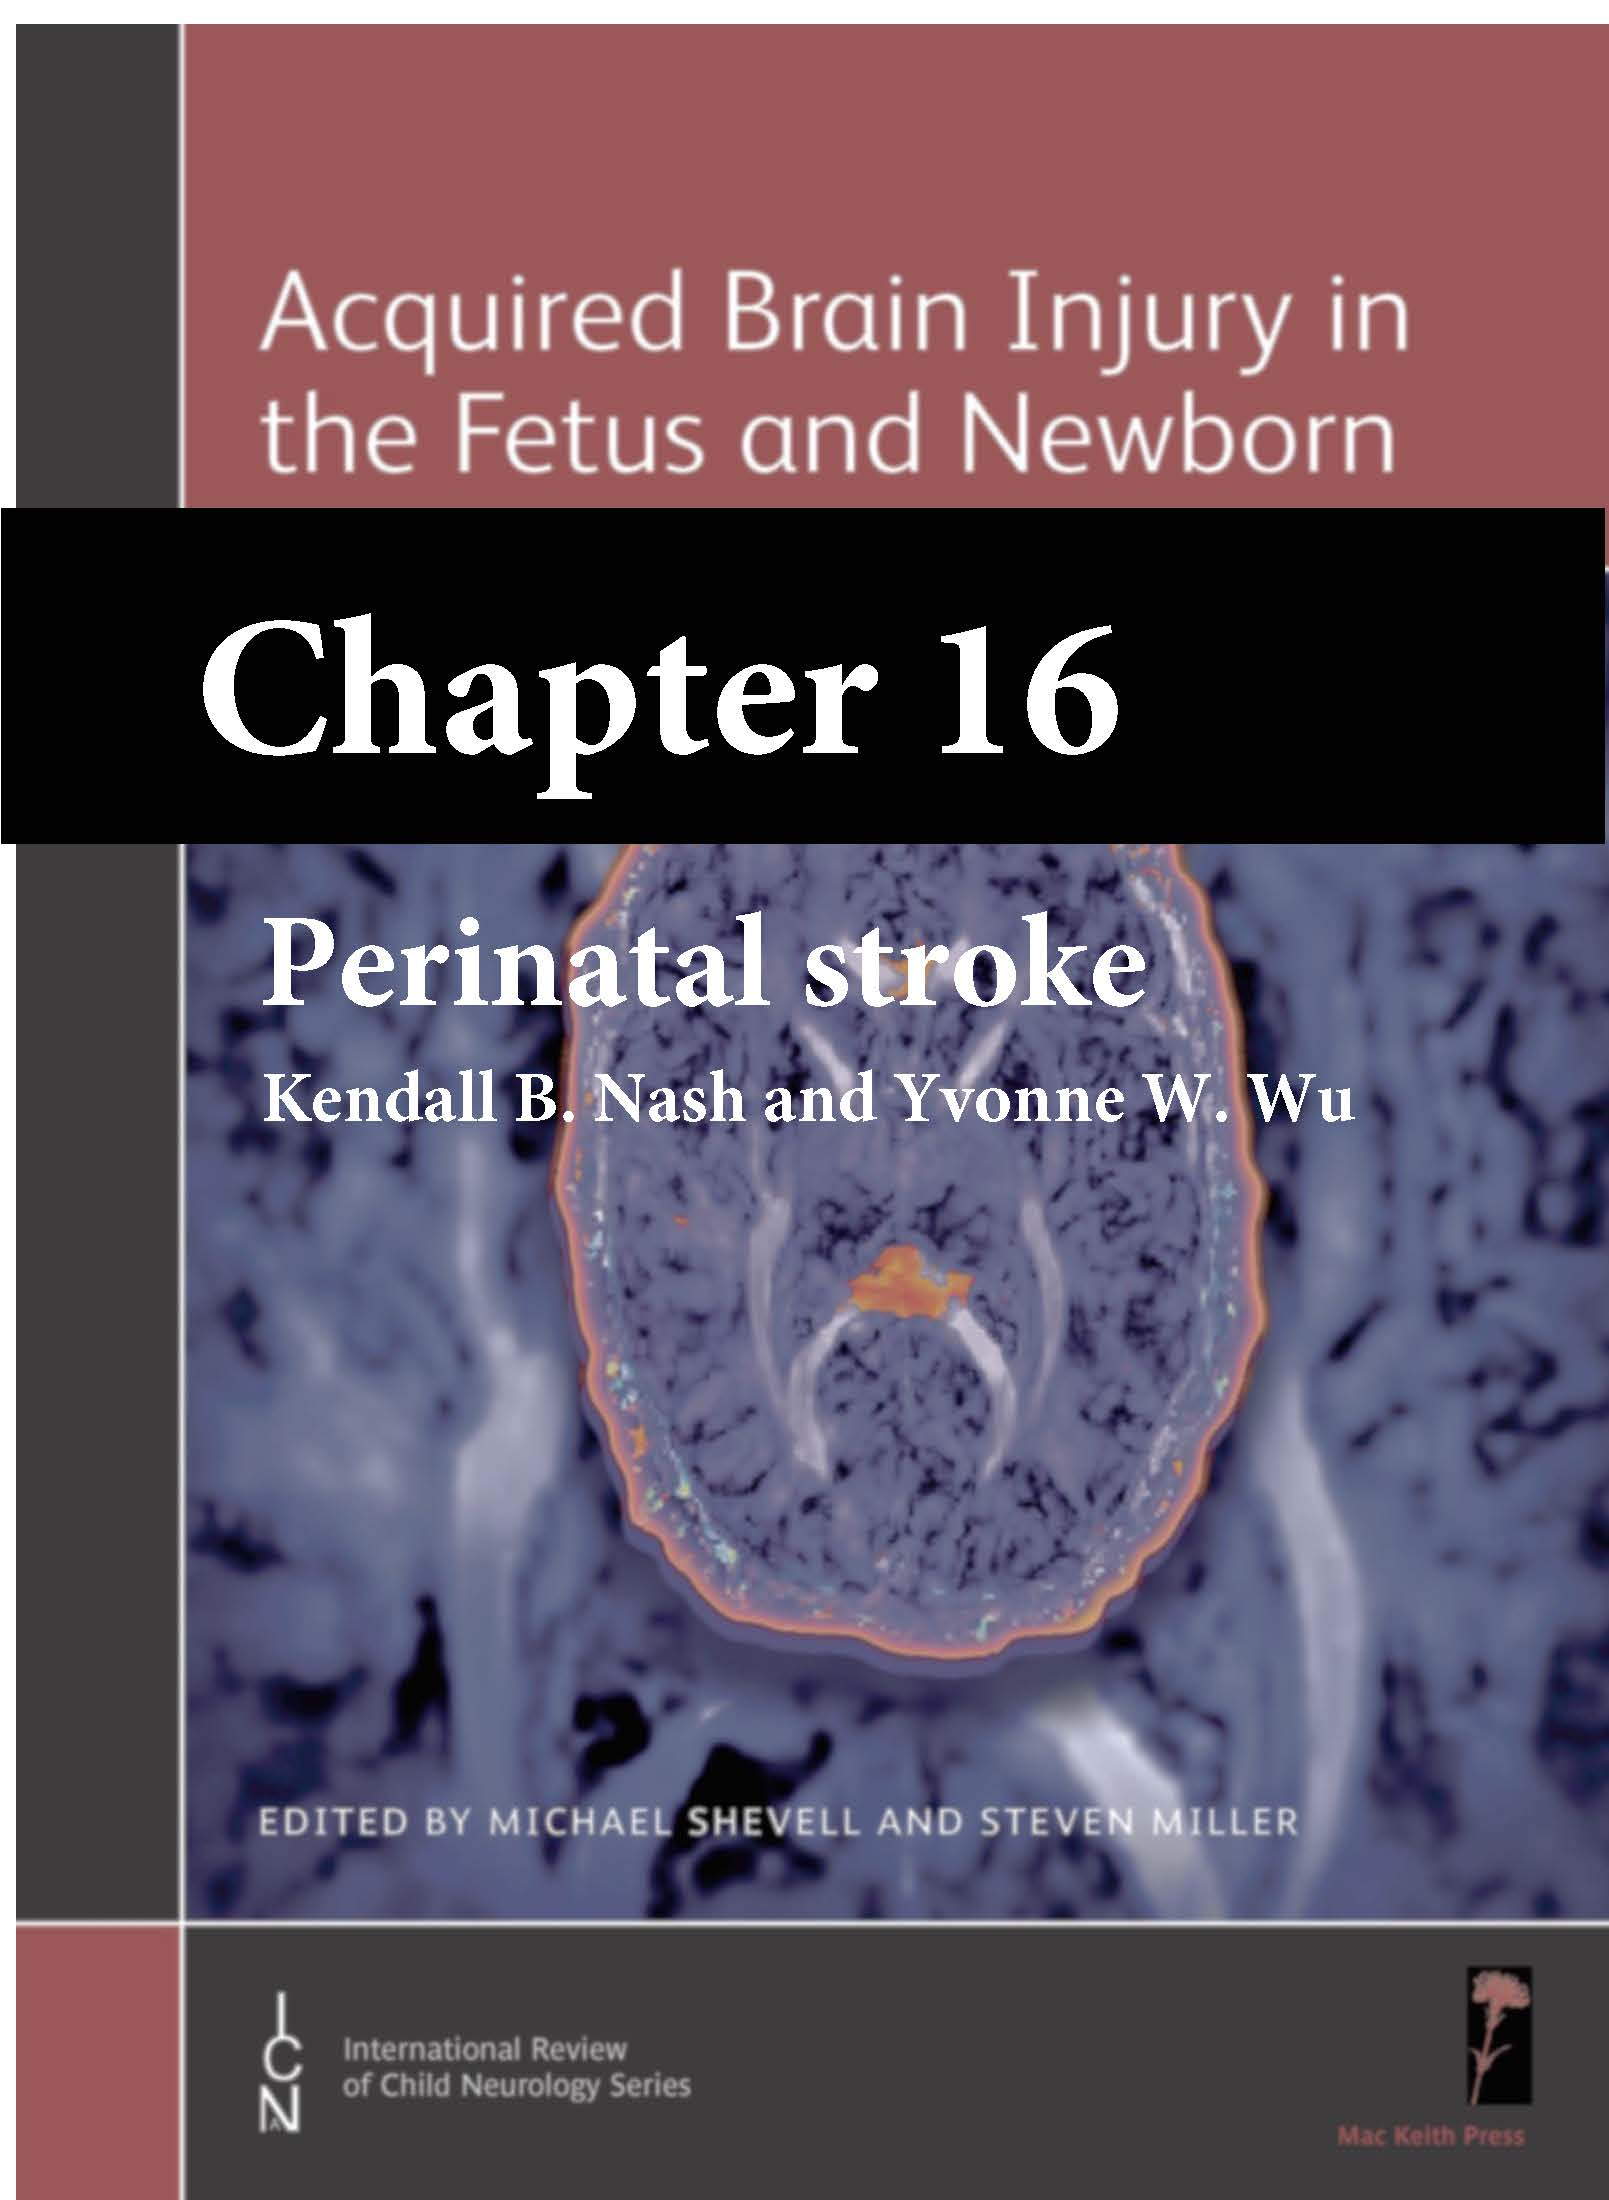 Acquired Brain Injury in the Fetus and Newborn, Shevell, Chapter 16 cover